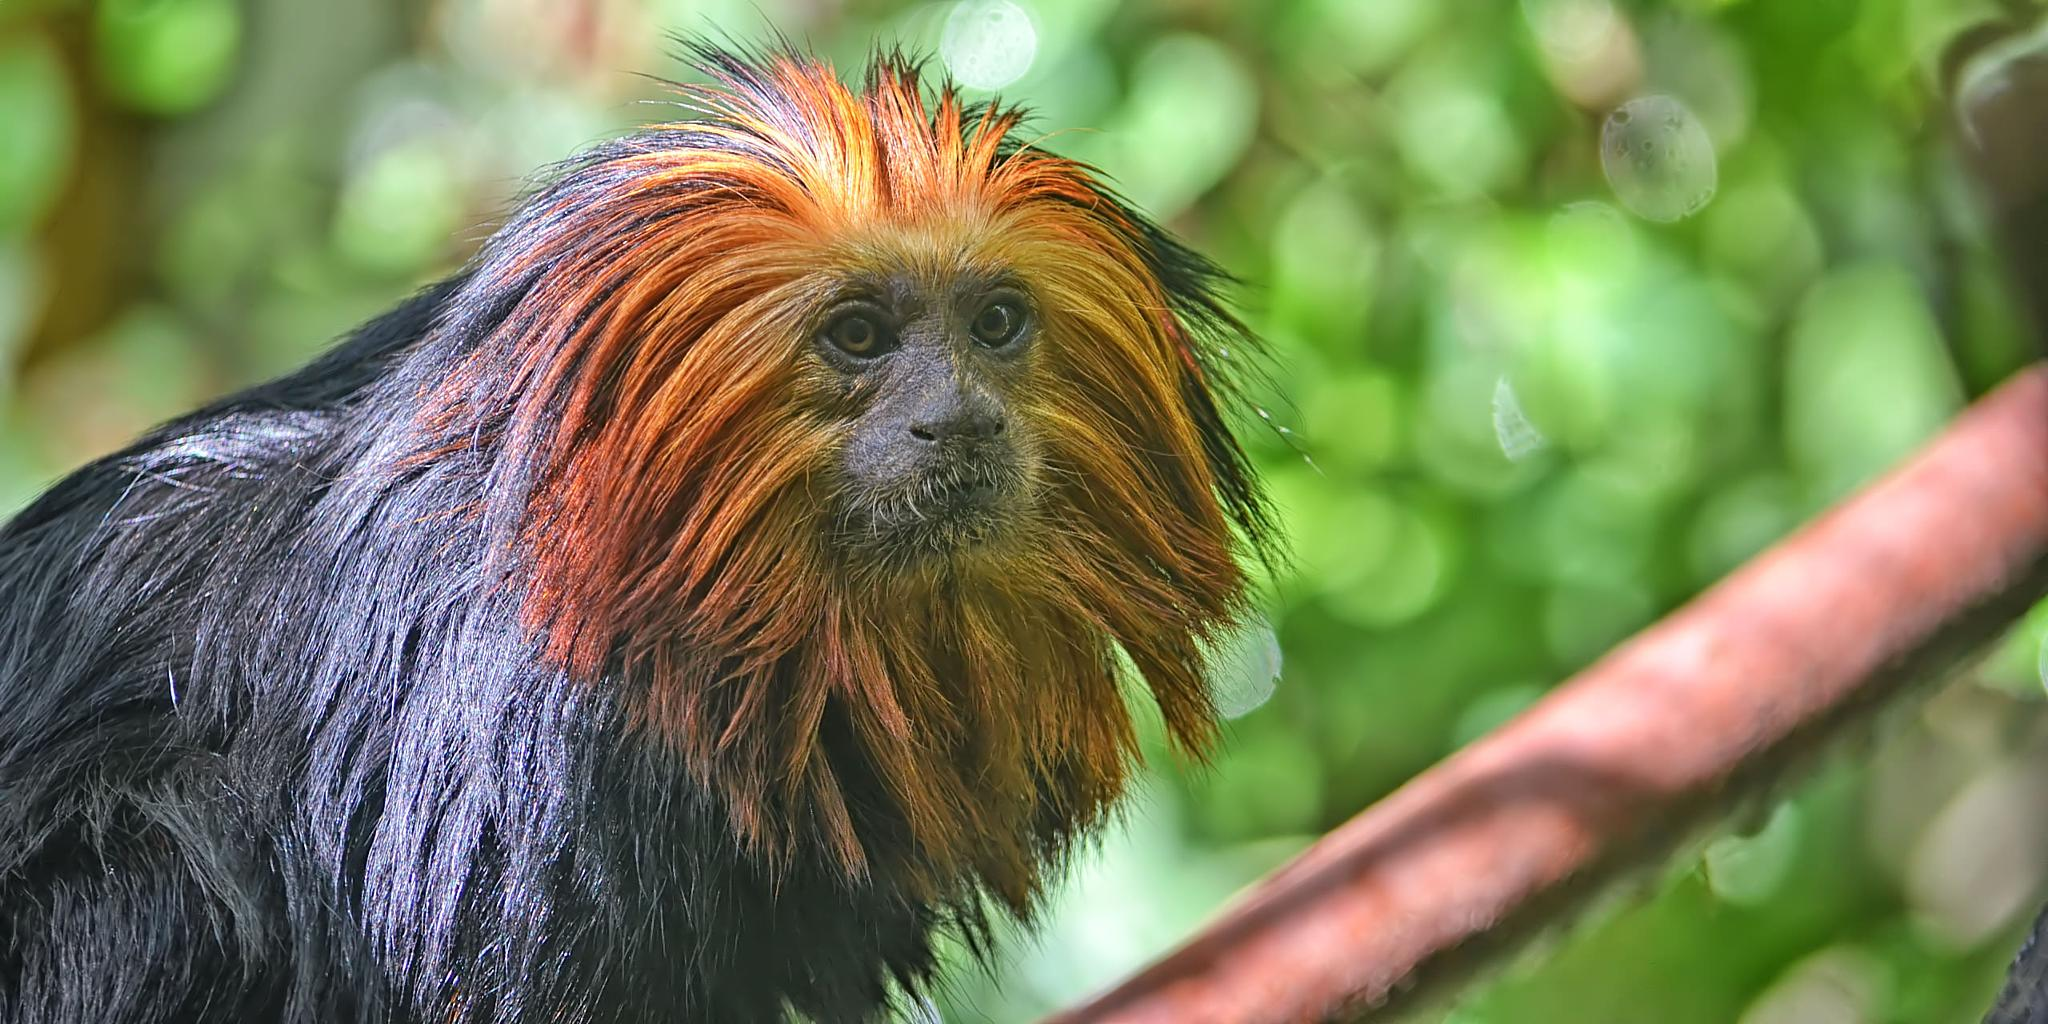 Golden-headed tamarin by Asterix93